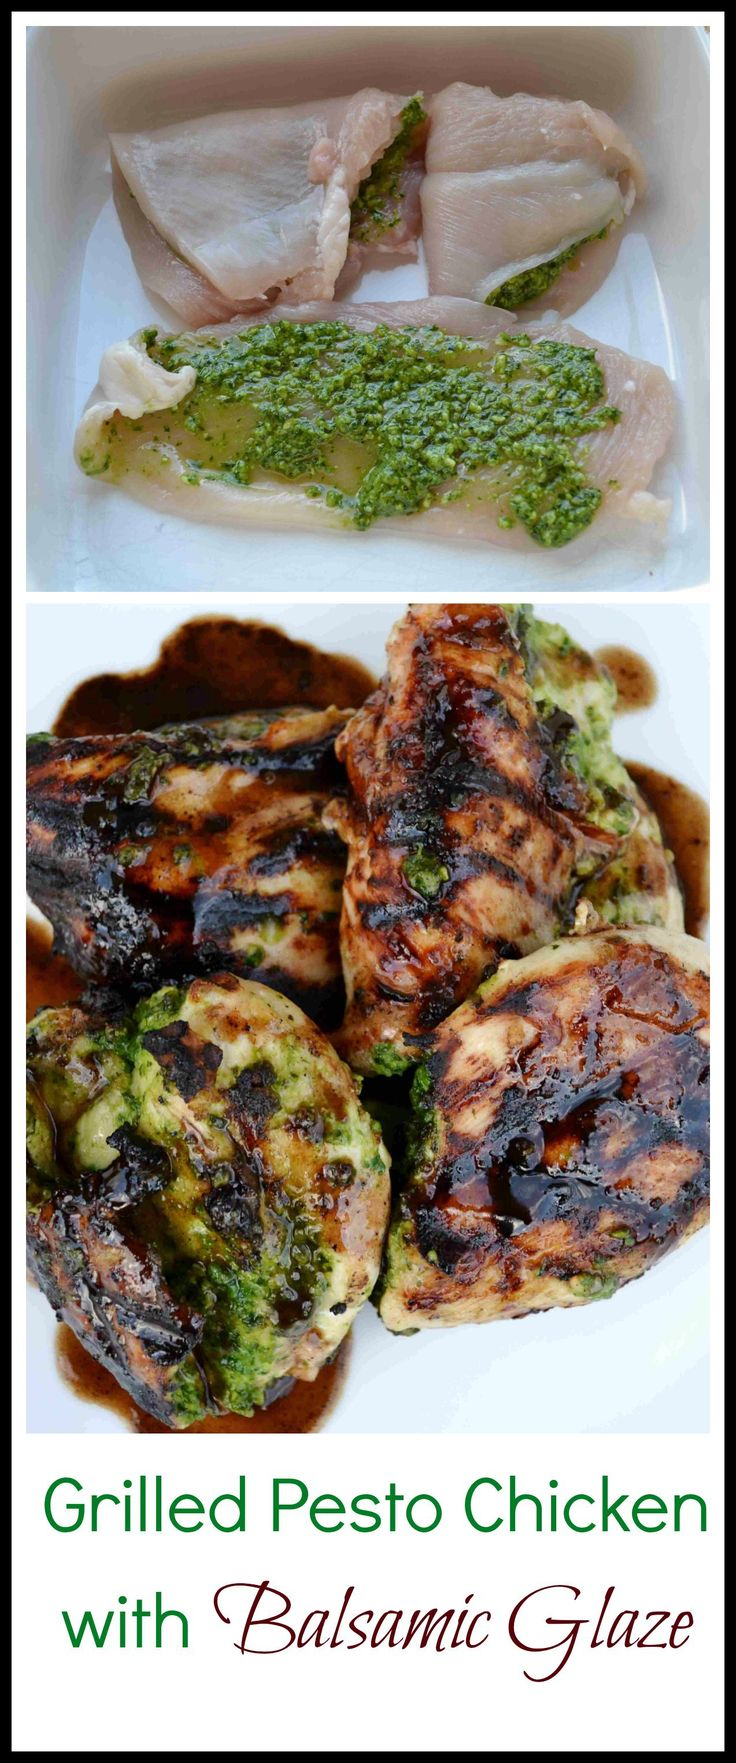 Grilled Pesto Chicken with Balsamic Glaze, Would be great with Calivinegar Barrel Aged Balsamic!